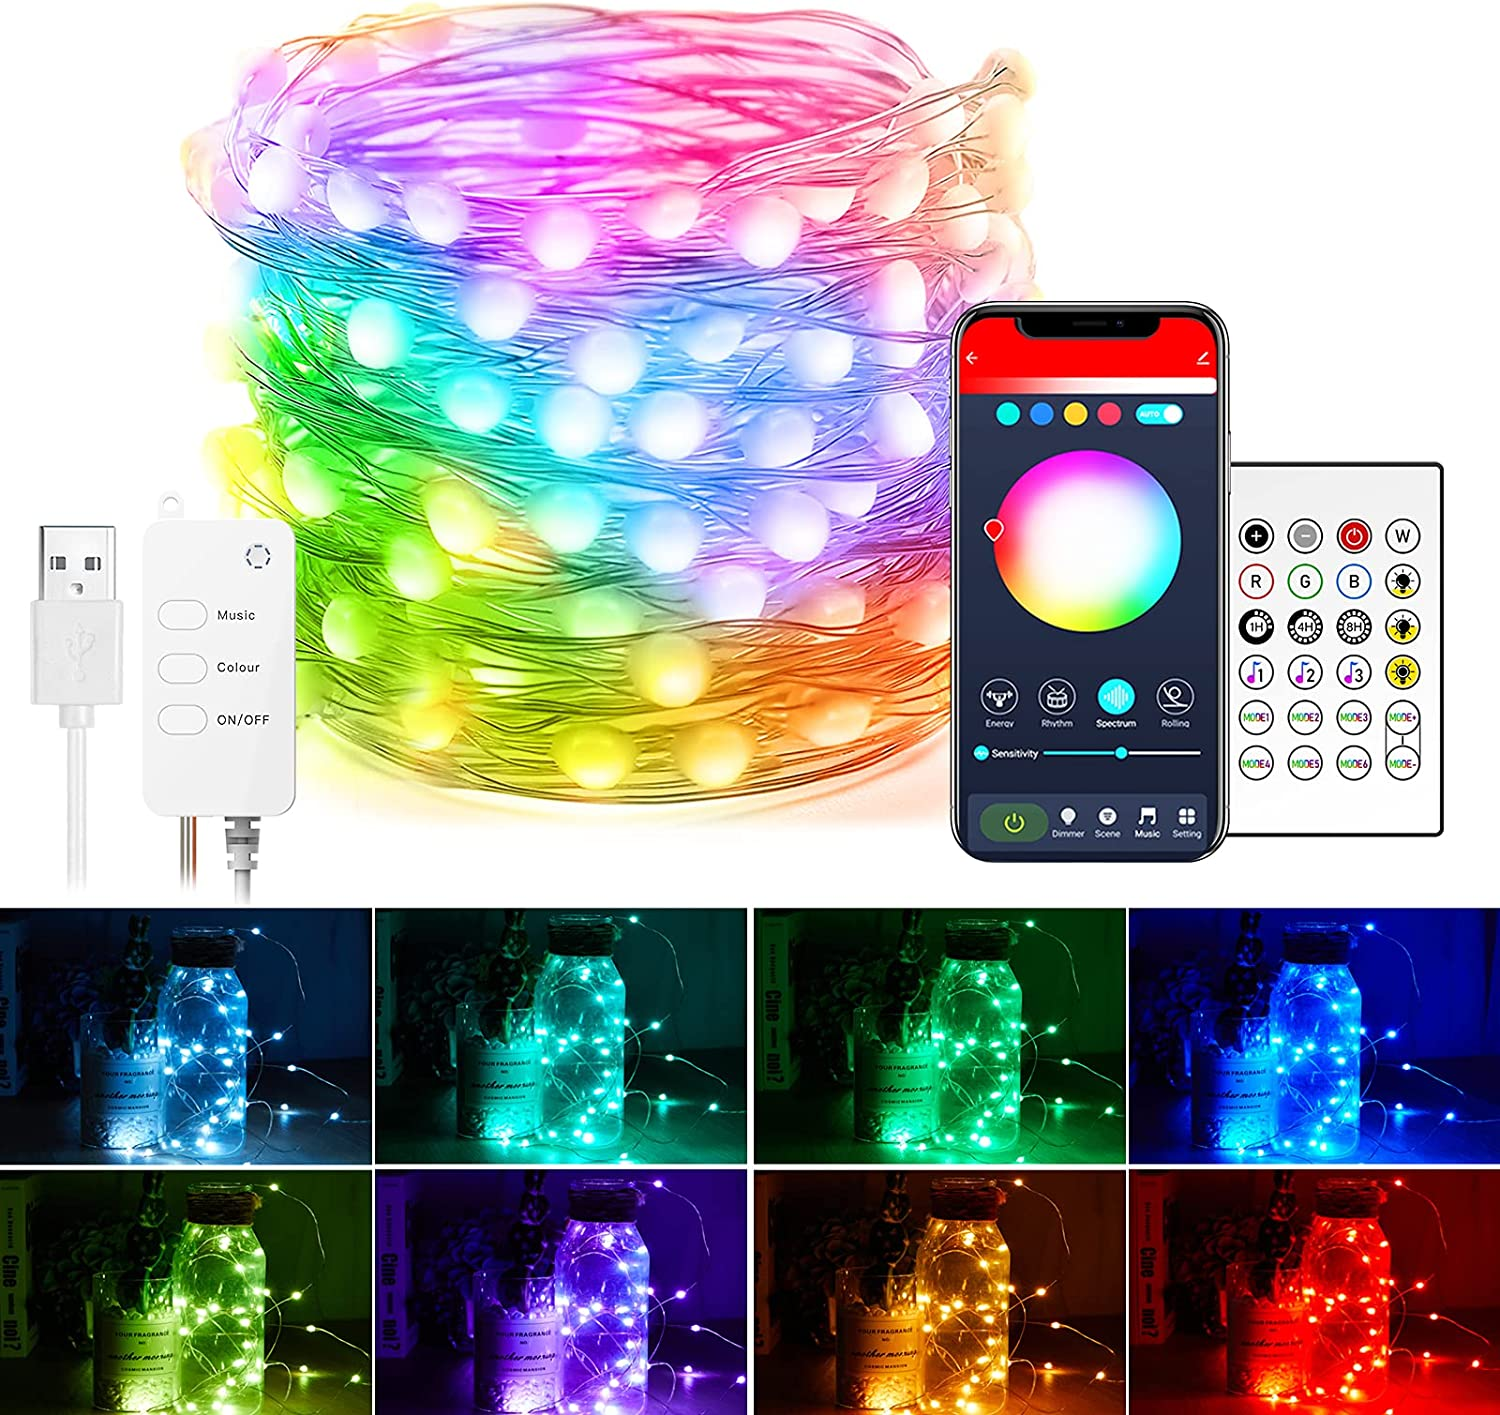 Smart Fairy String Lights: 32.8 Ft 66 LED USB Bluetooth Twinkle Lights with Timer and Remote, Music Sync and App Controlled Funny Modes Color Changing Firefly Lights for Bedroom Indoor Christmas Decor